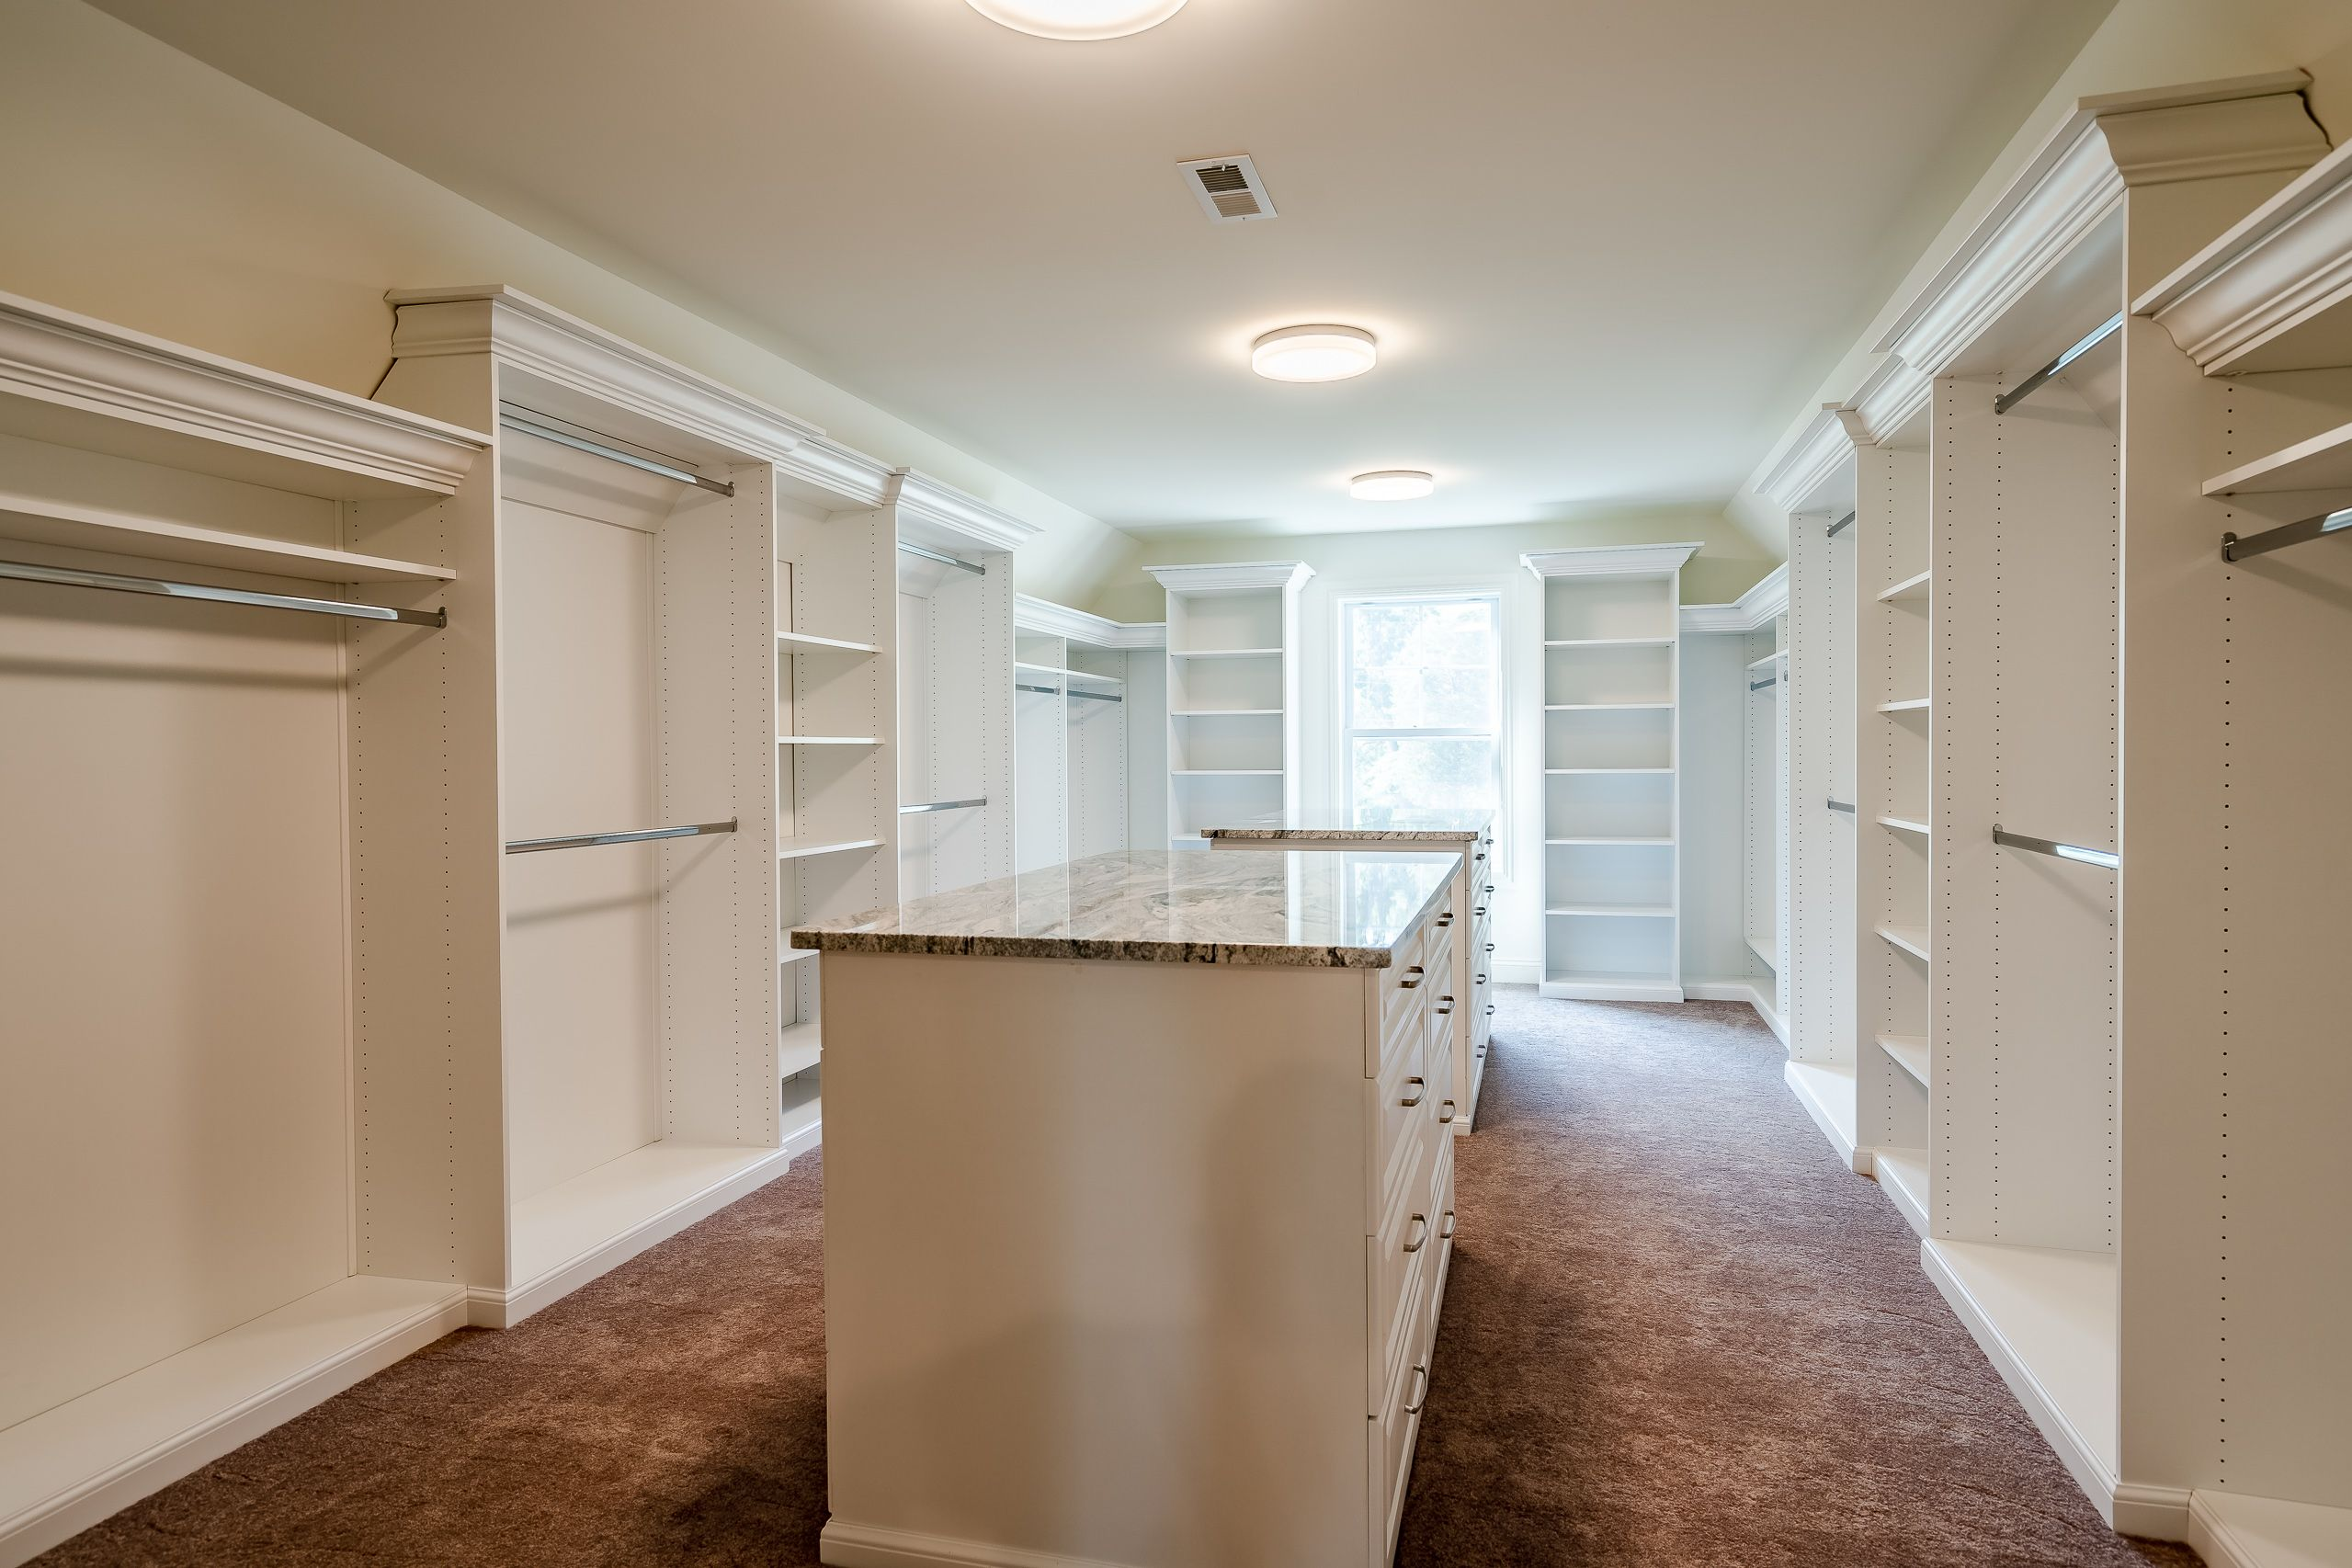 Living Area featured in The Gwynwood By Cornerstone Premier Homes in Philadelphia, PA